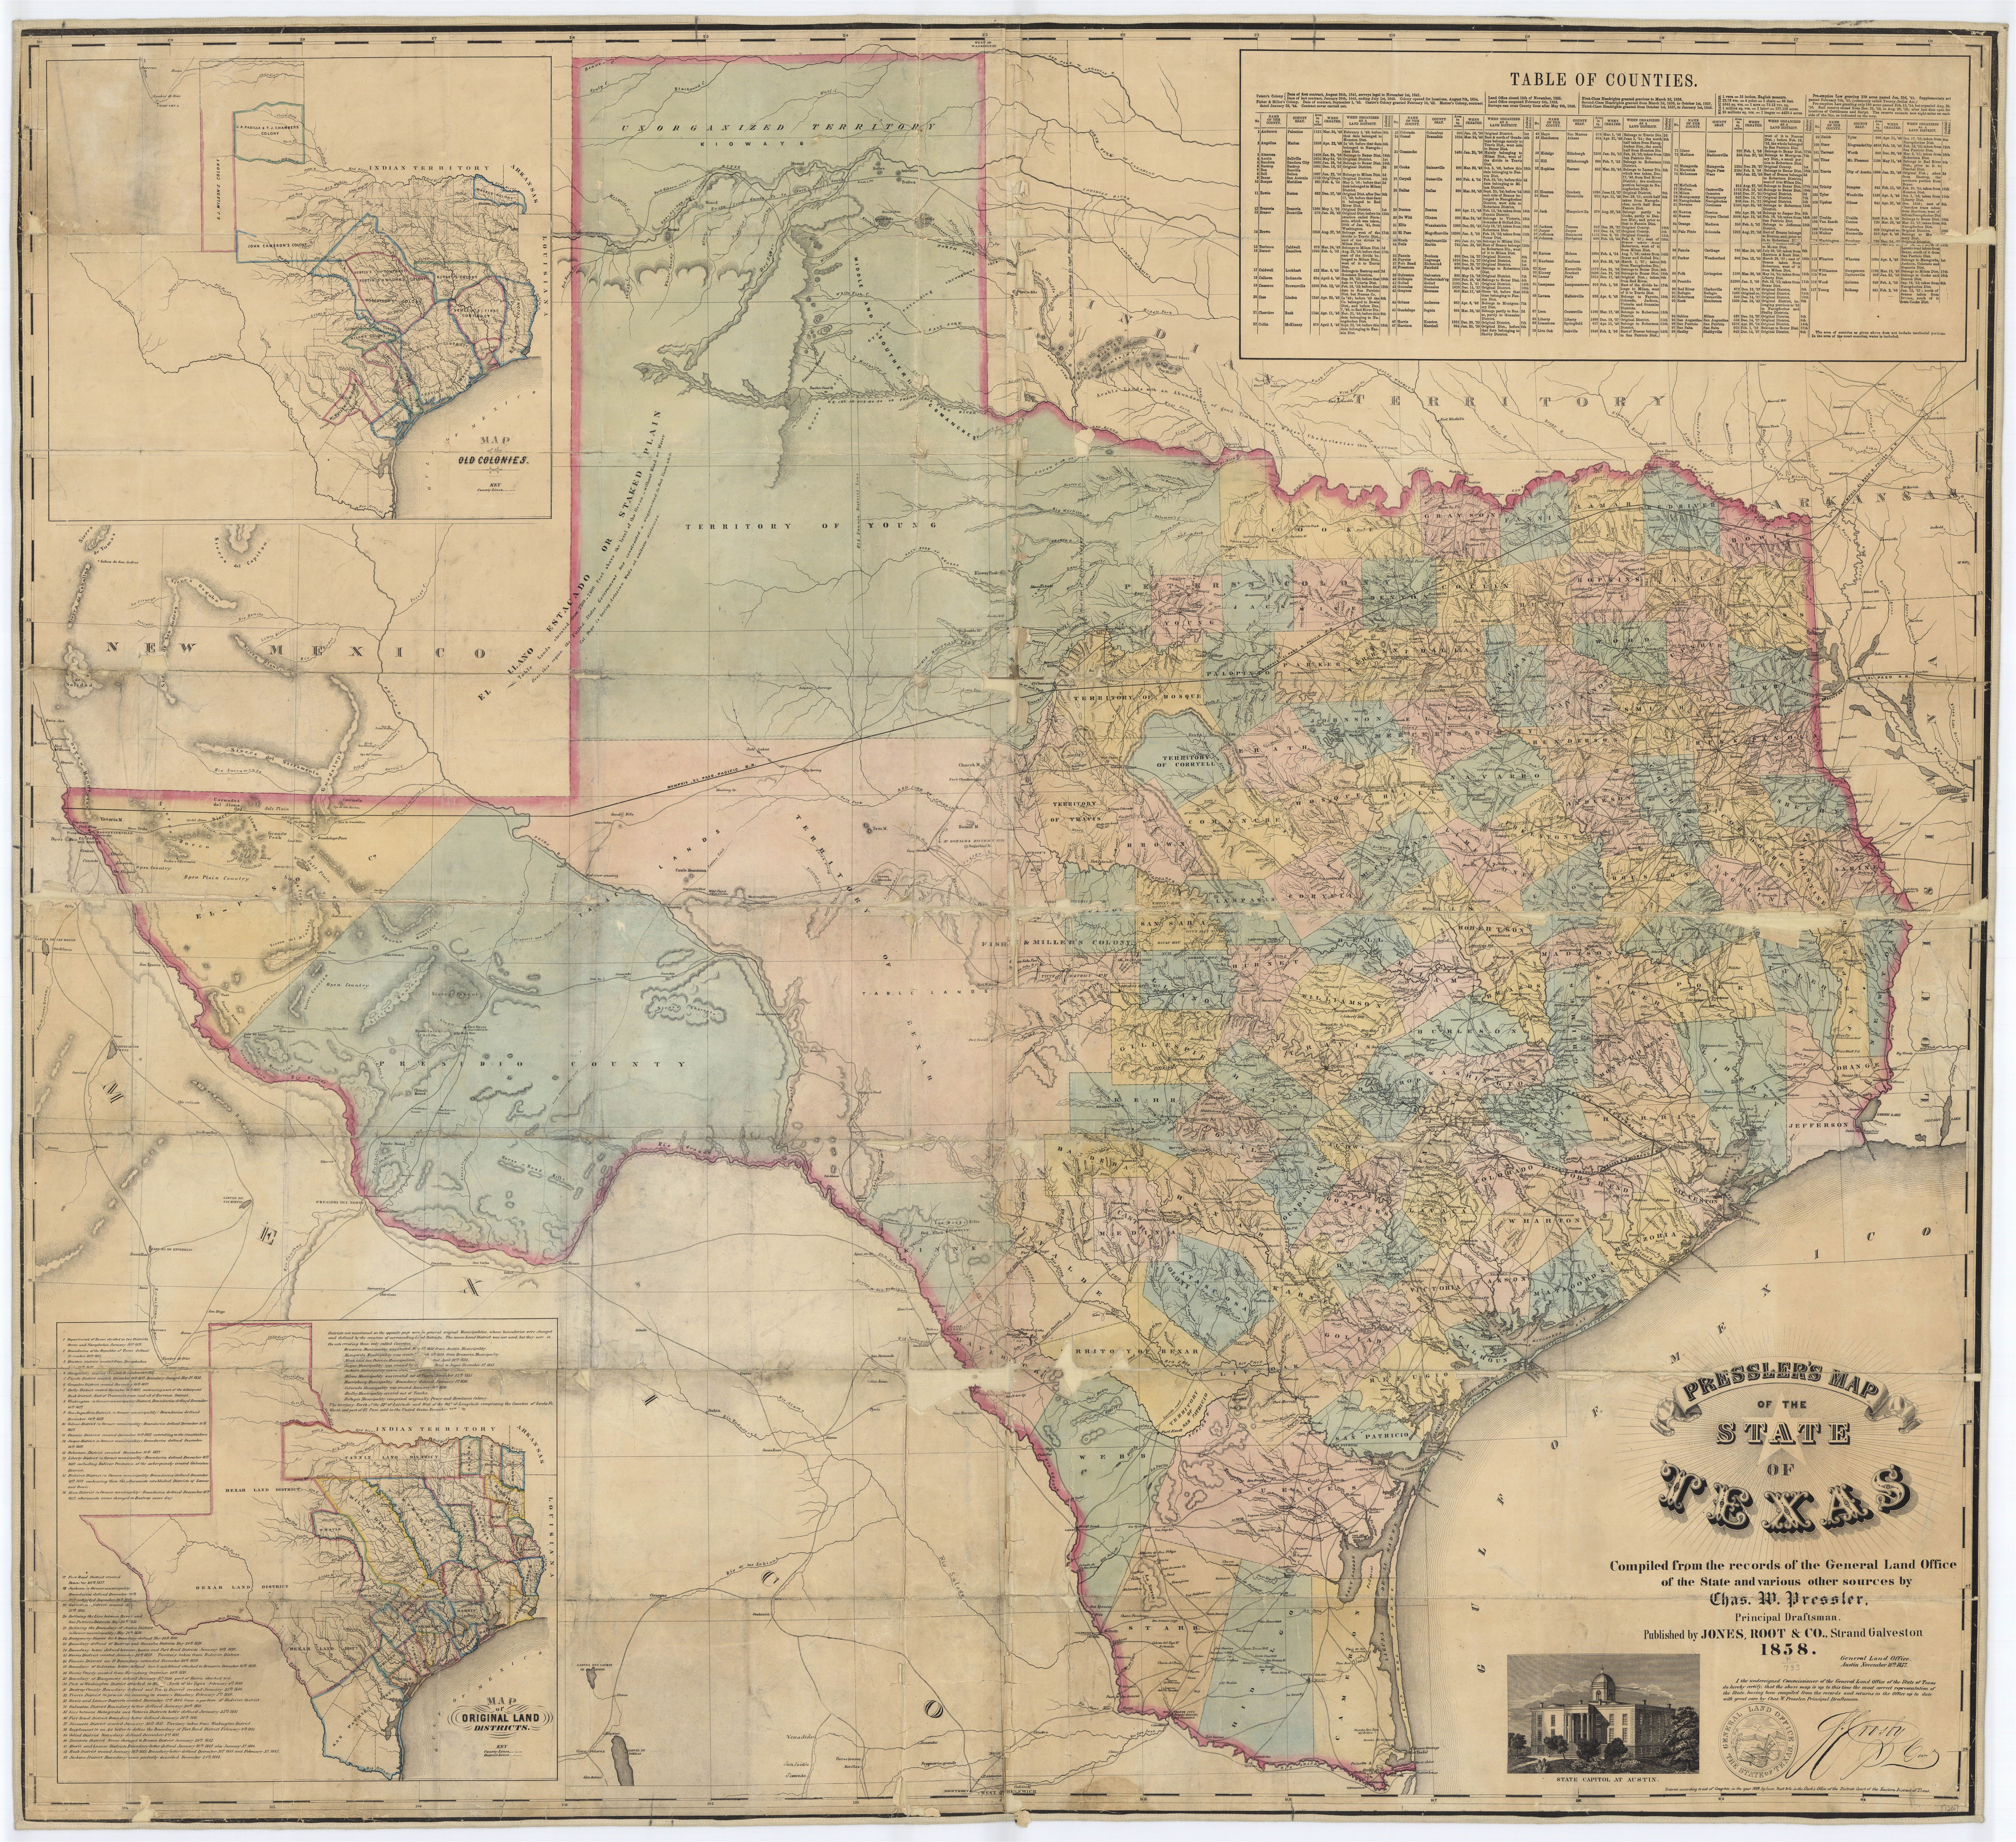 Map Of Texas In 1836.1836 Map Of Texas Vintage Texas Map A R T In 2019 Vintage Maps Texas